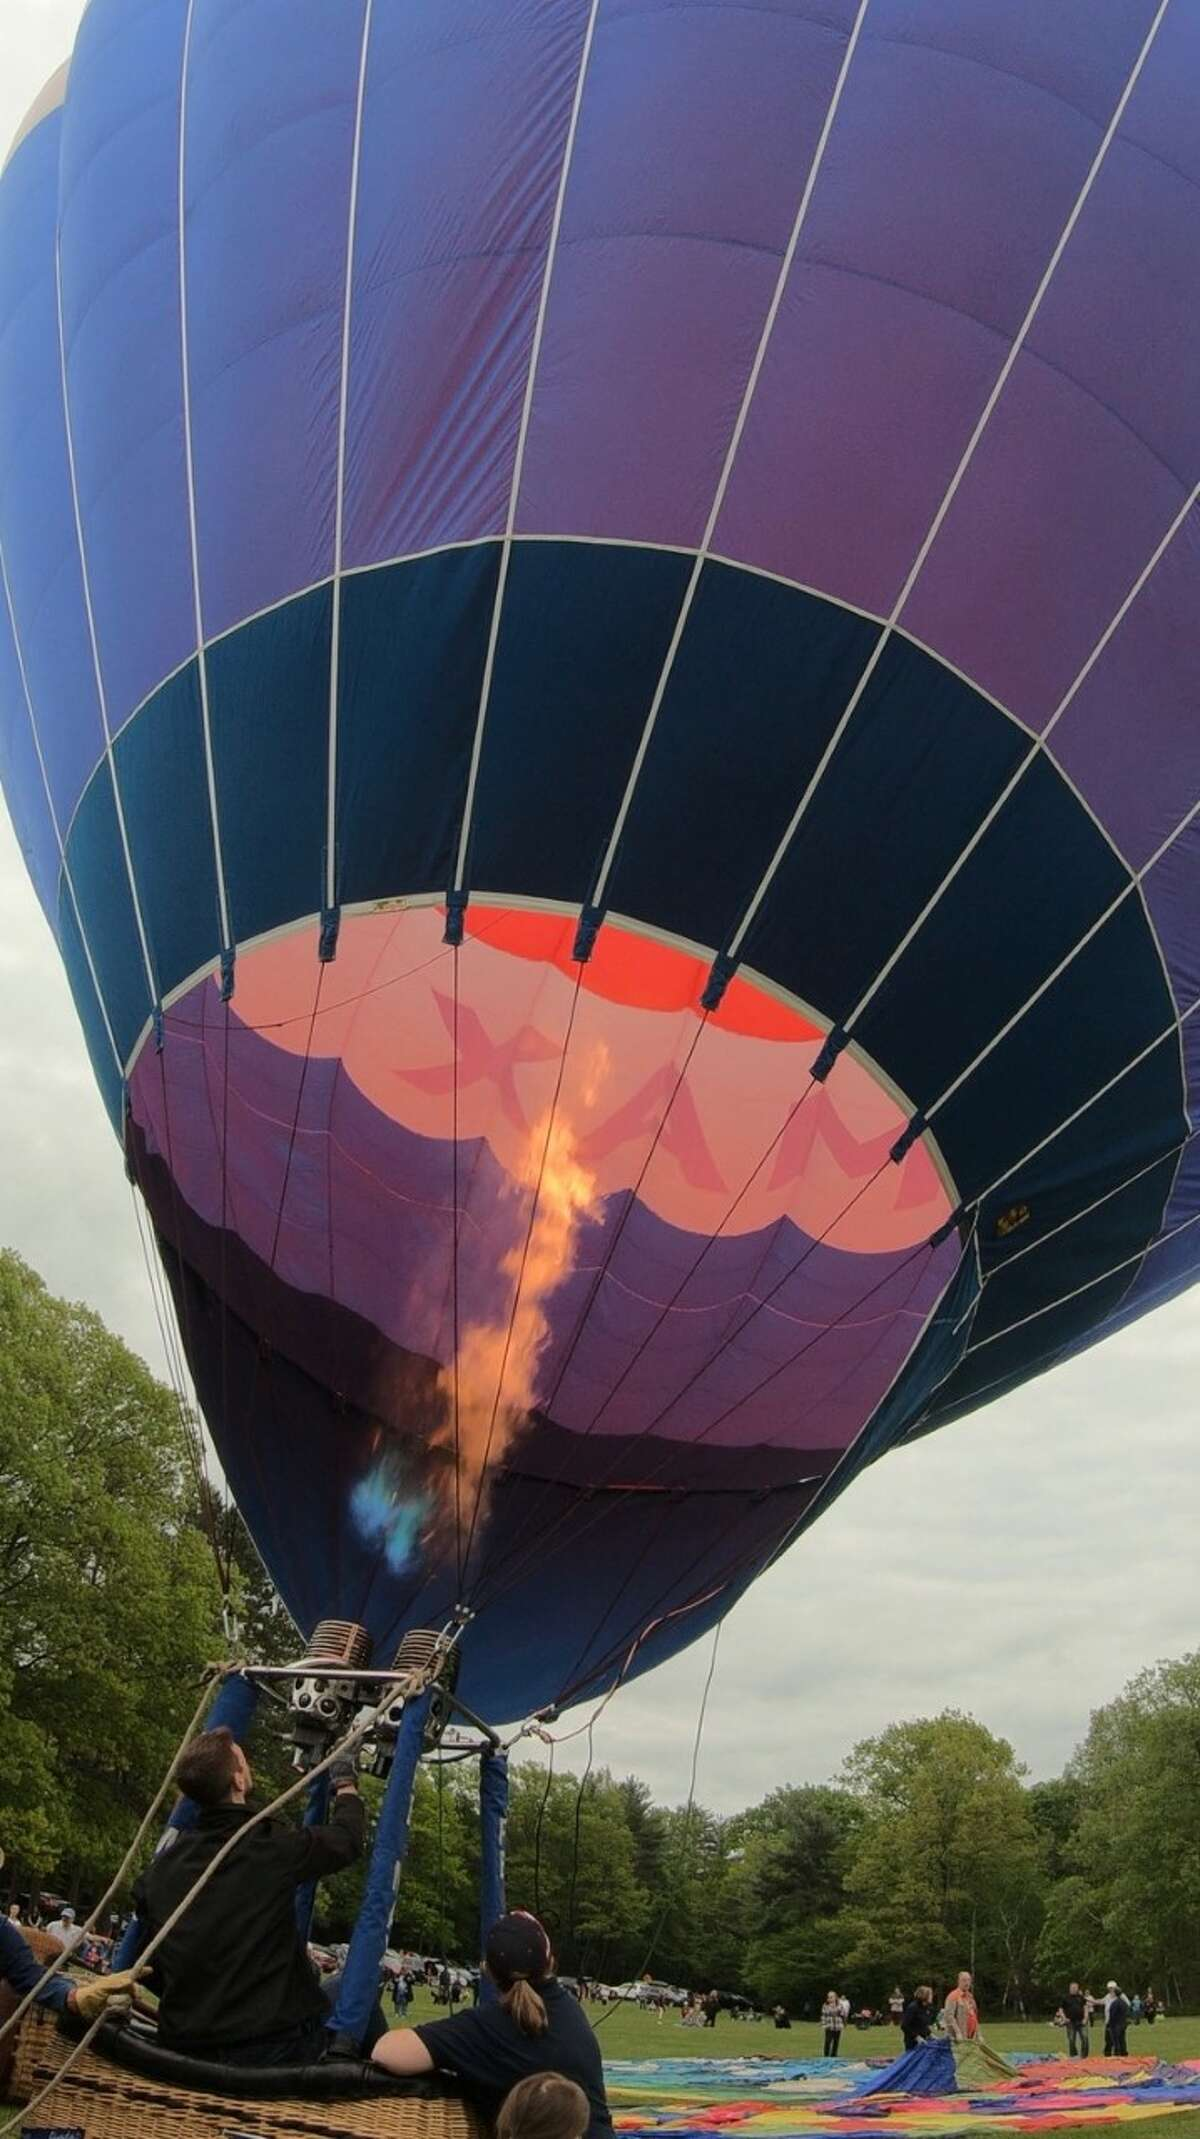 Inflating balloons at Letchworth State Park. (credit: Jessica Kelly)